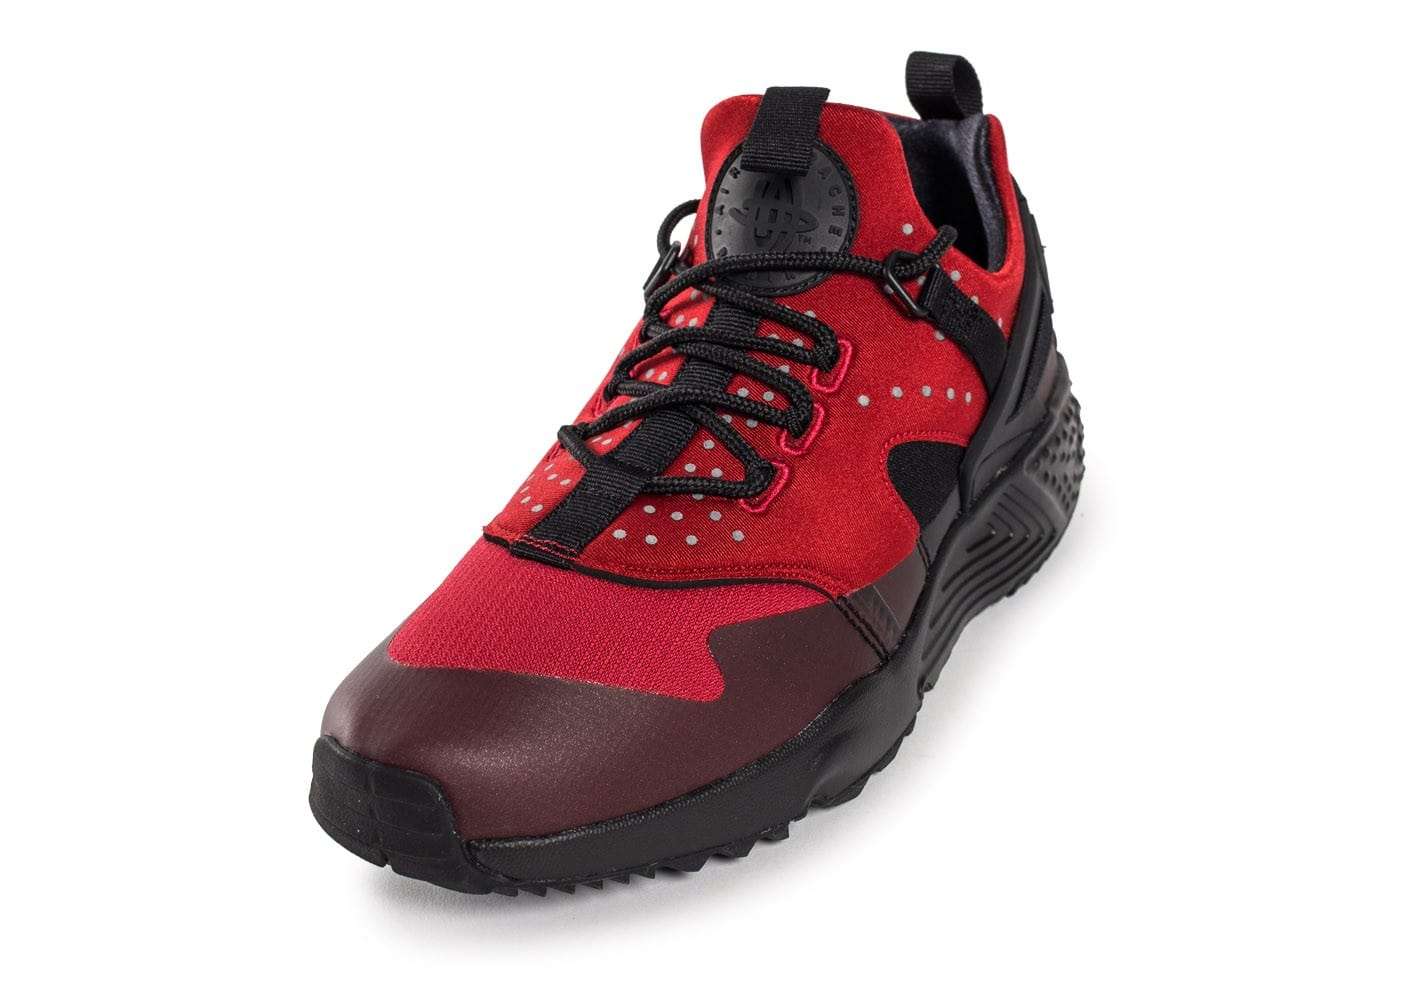 Utility Chausport Air Homme Chaussures Baskets Rouge Huarache Nike hQBrCtxsd